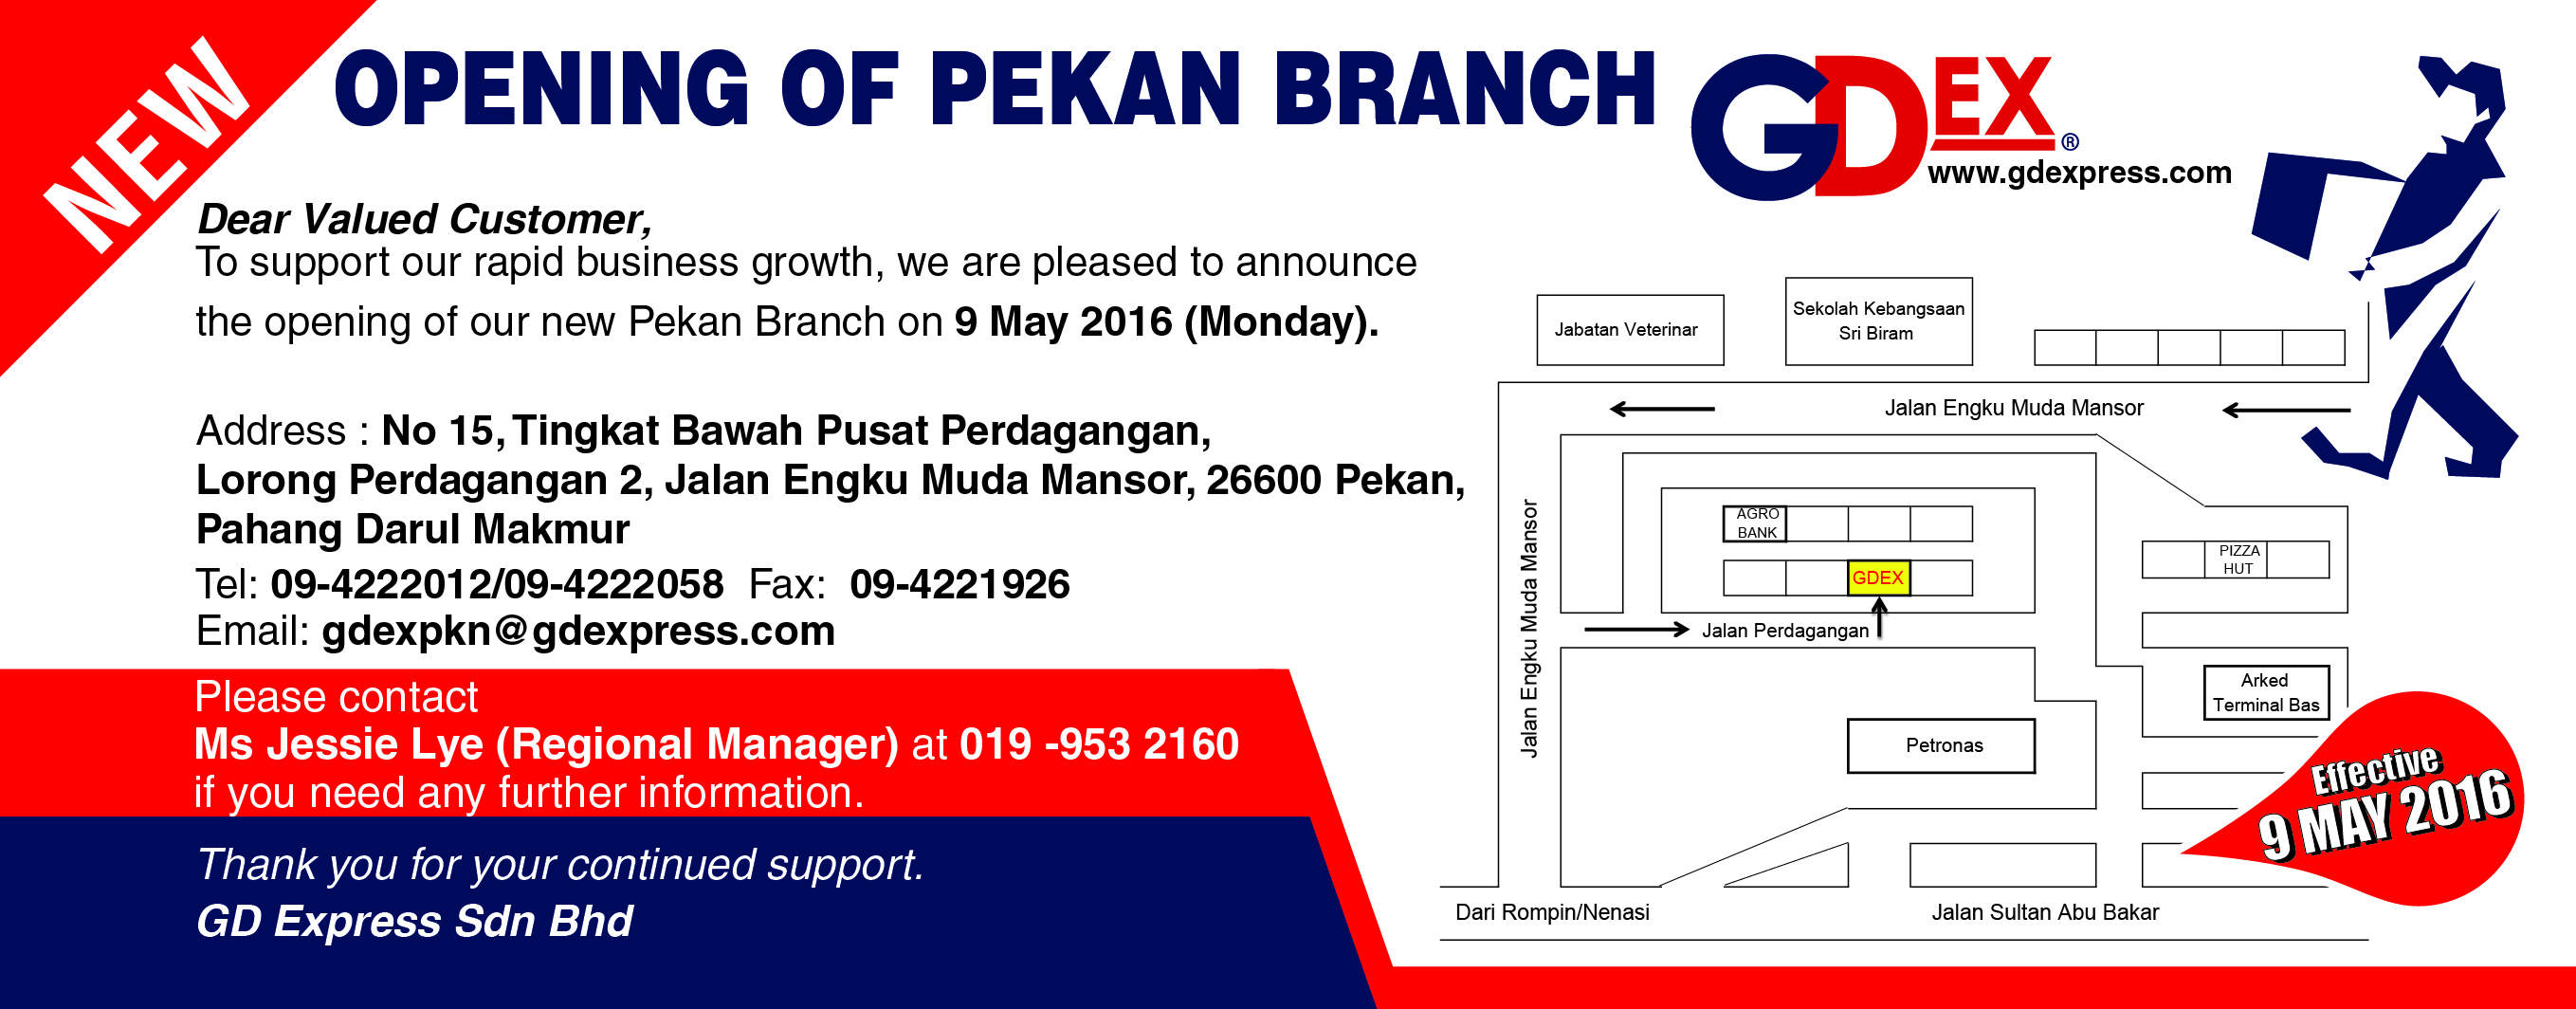 Opening of Pekan Branch